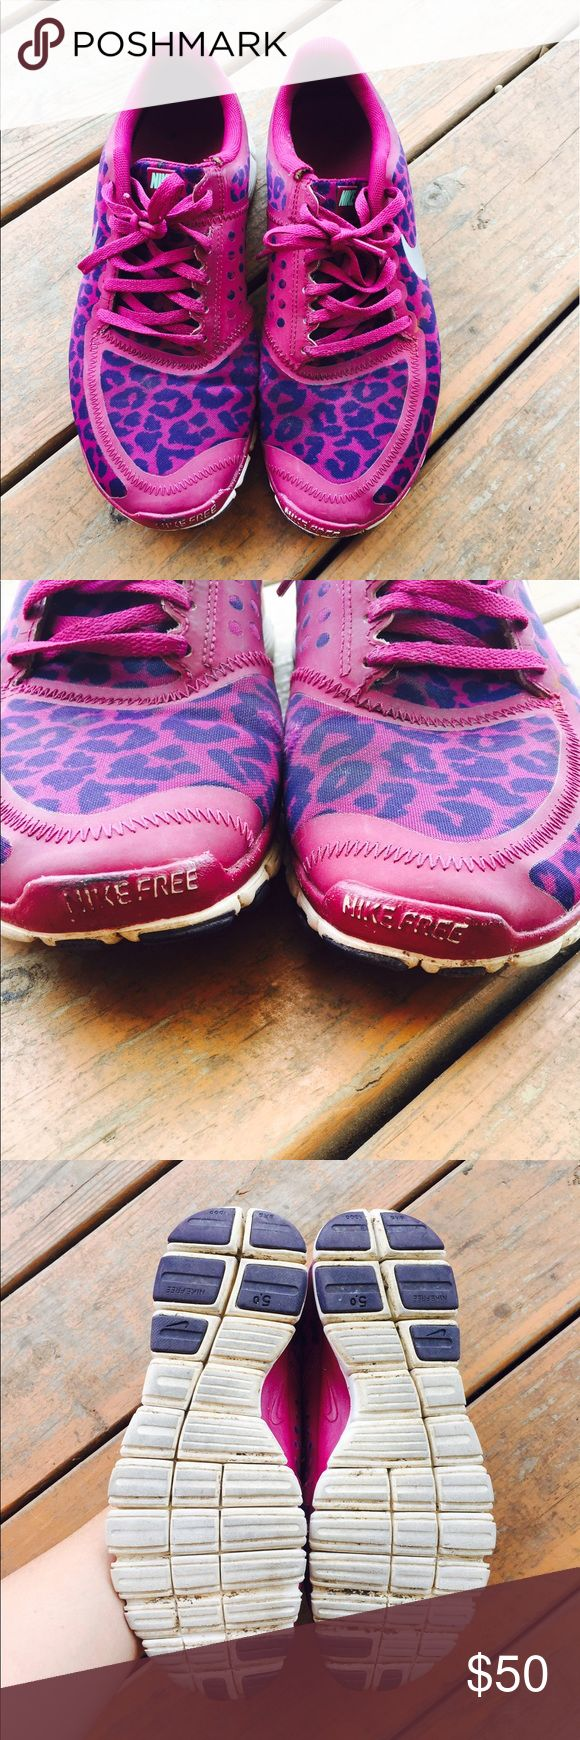 Limited edition cheetah print purple free runs 8.5 Women's 8.5 Nike free runs  Limited edition purple cheetah print  Good used condition  Runs small if you normally wear a 8 this is a good size for you  Lightweight great walking gym shoe Nike Shoes Sneakers